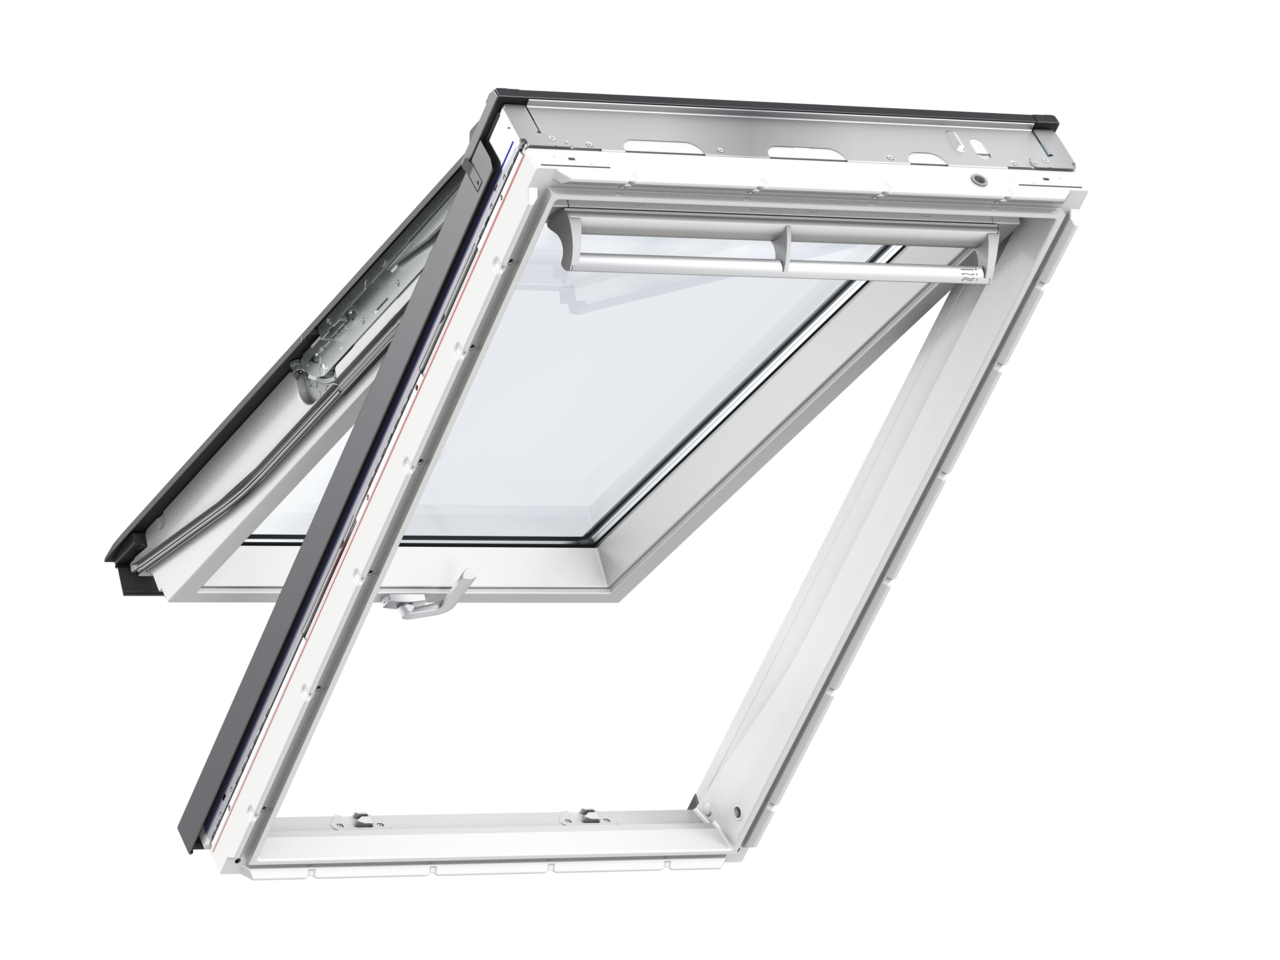 Velux GPU FK06 660 x 1180mm Top Hung 60Pane Roof Window - White Polyurethane